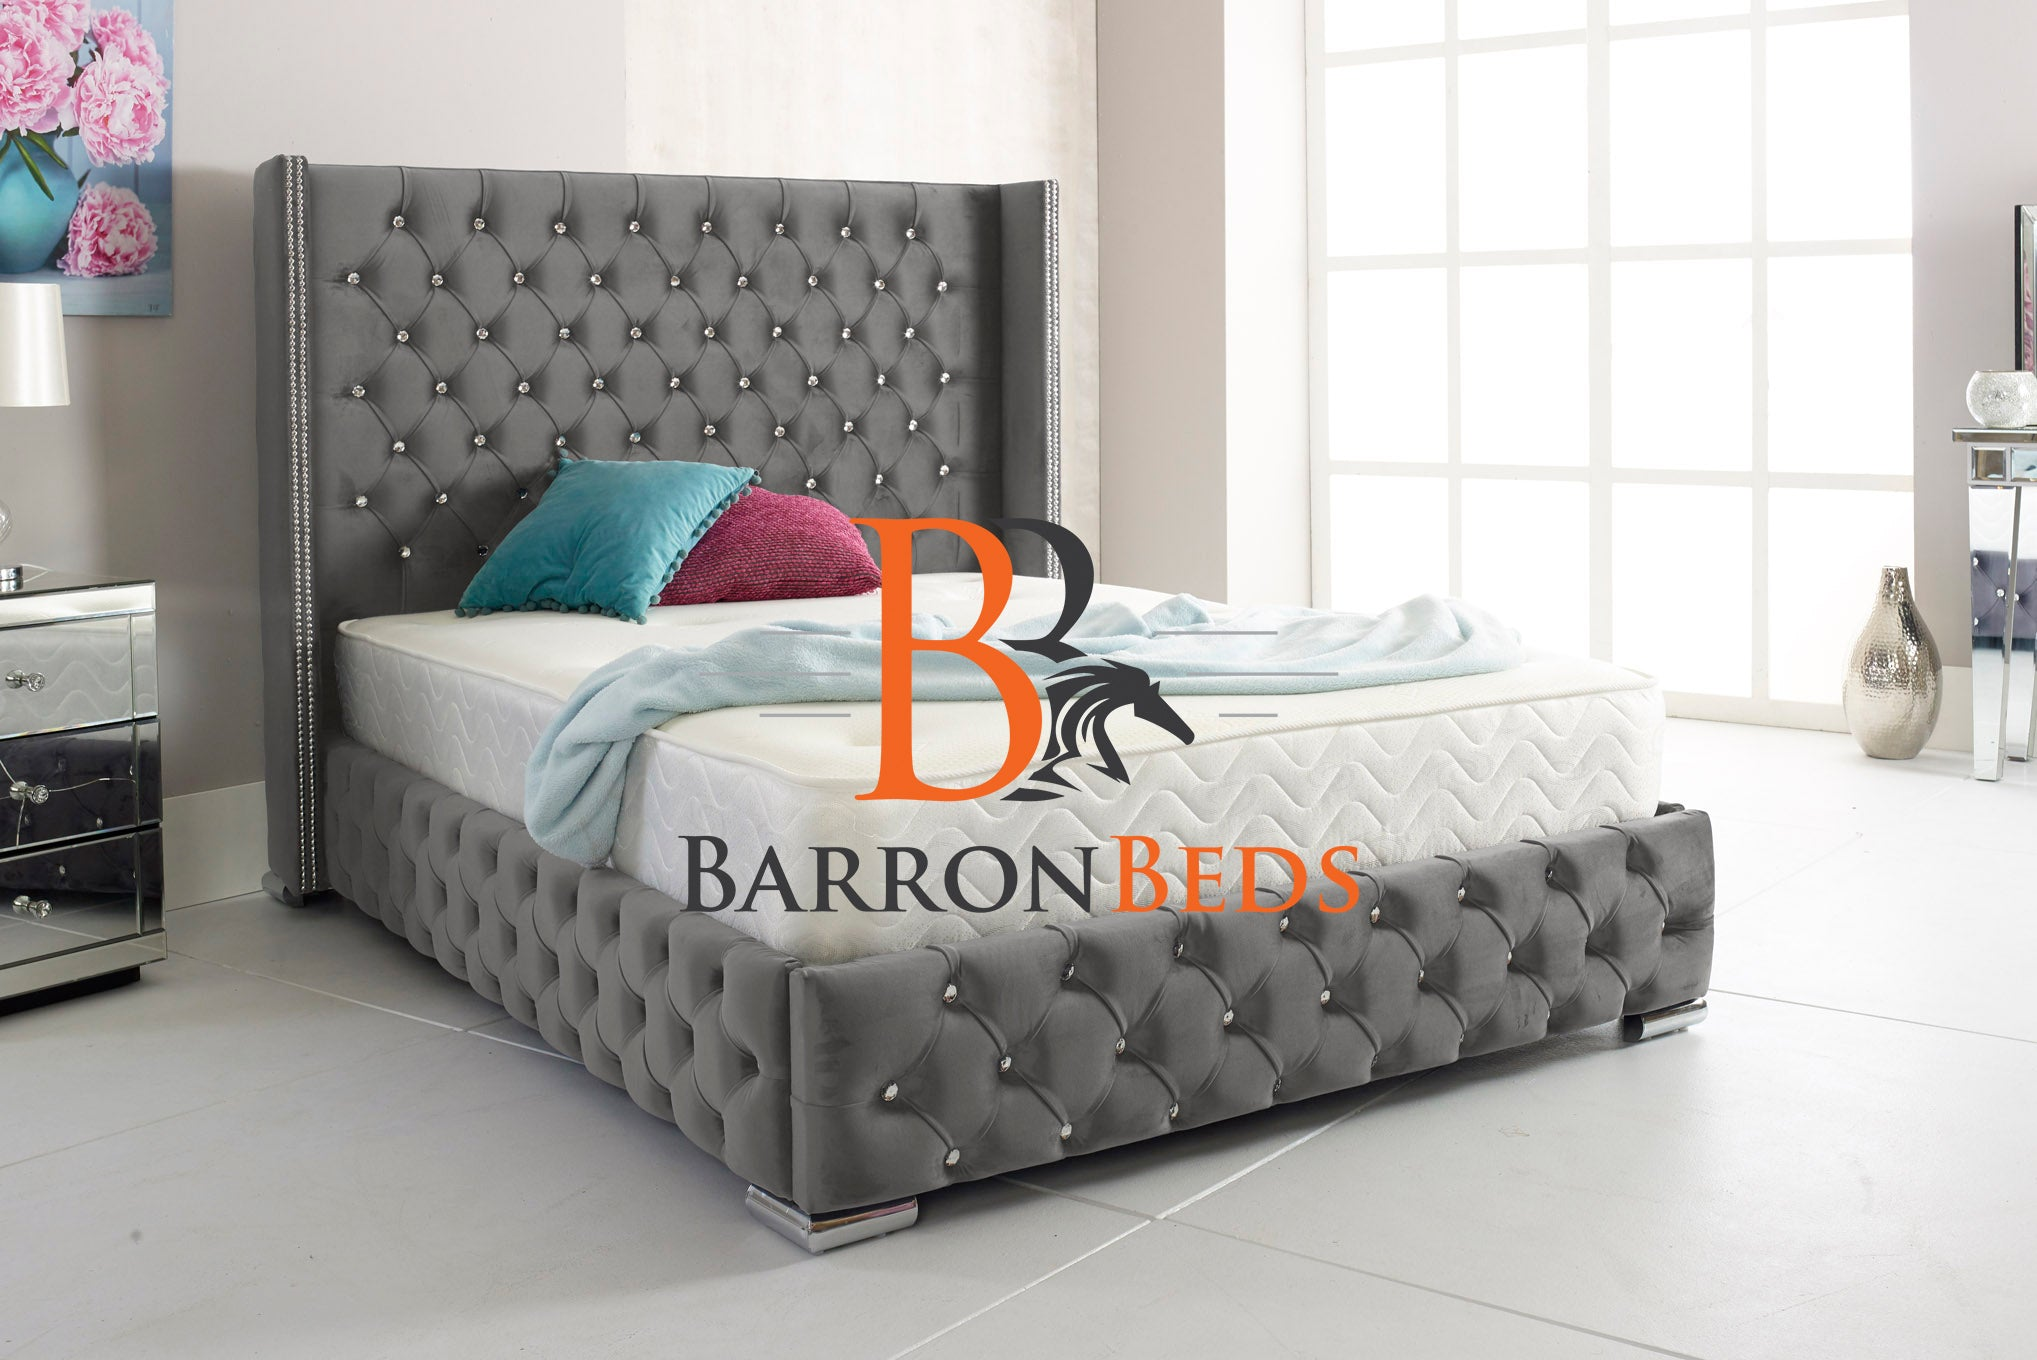 Plaza Chesterfield Wingback Bed Frame Part of the Barronbeds Bespoke Range